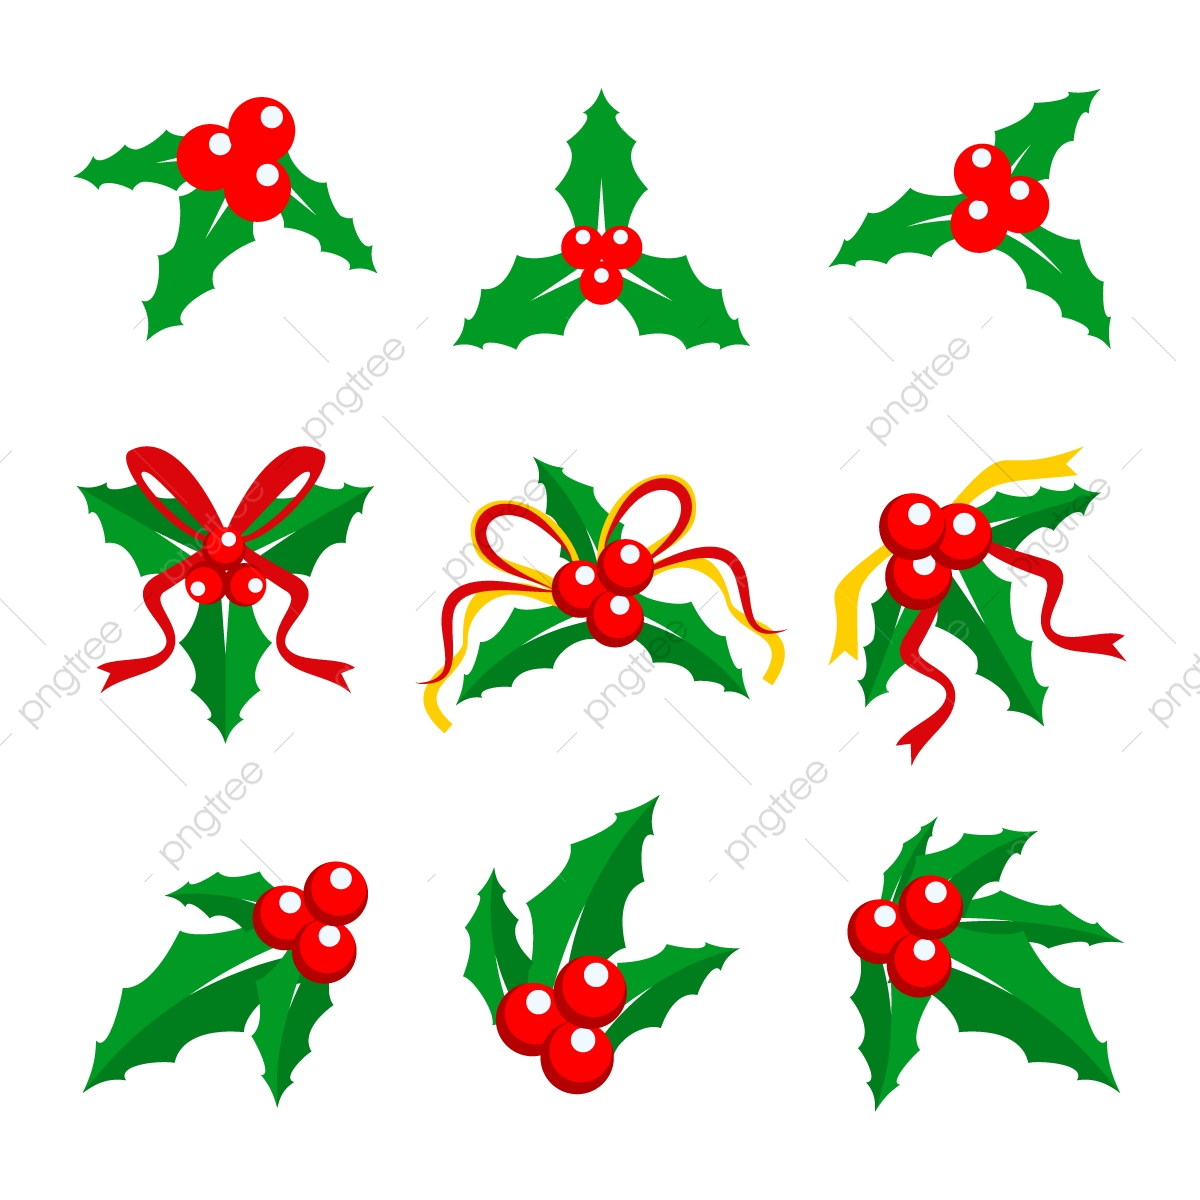 Holly Berry Red Ribbon Vector Illustration, Png, Christmas, Holly.